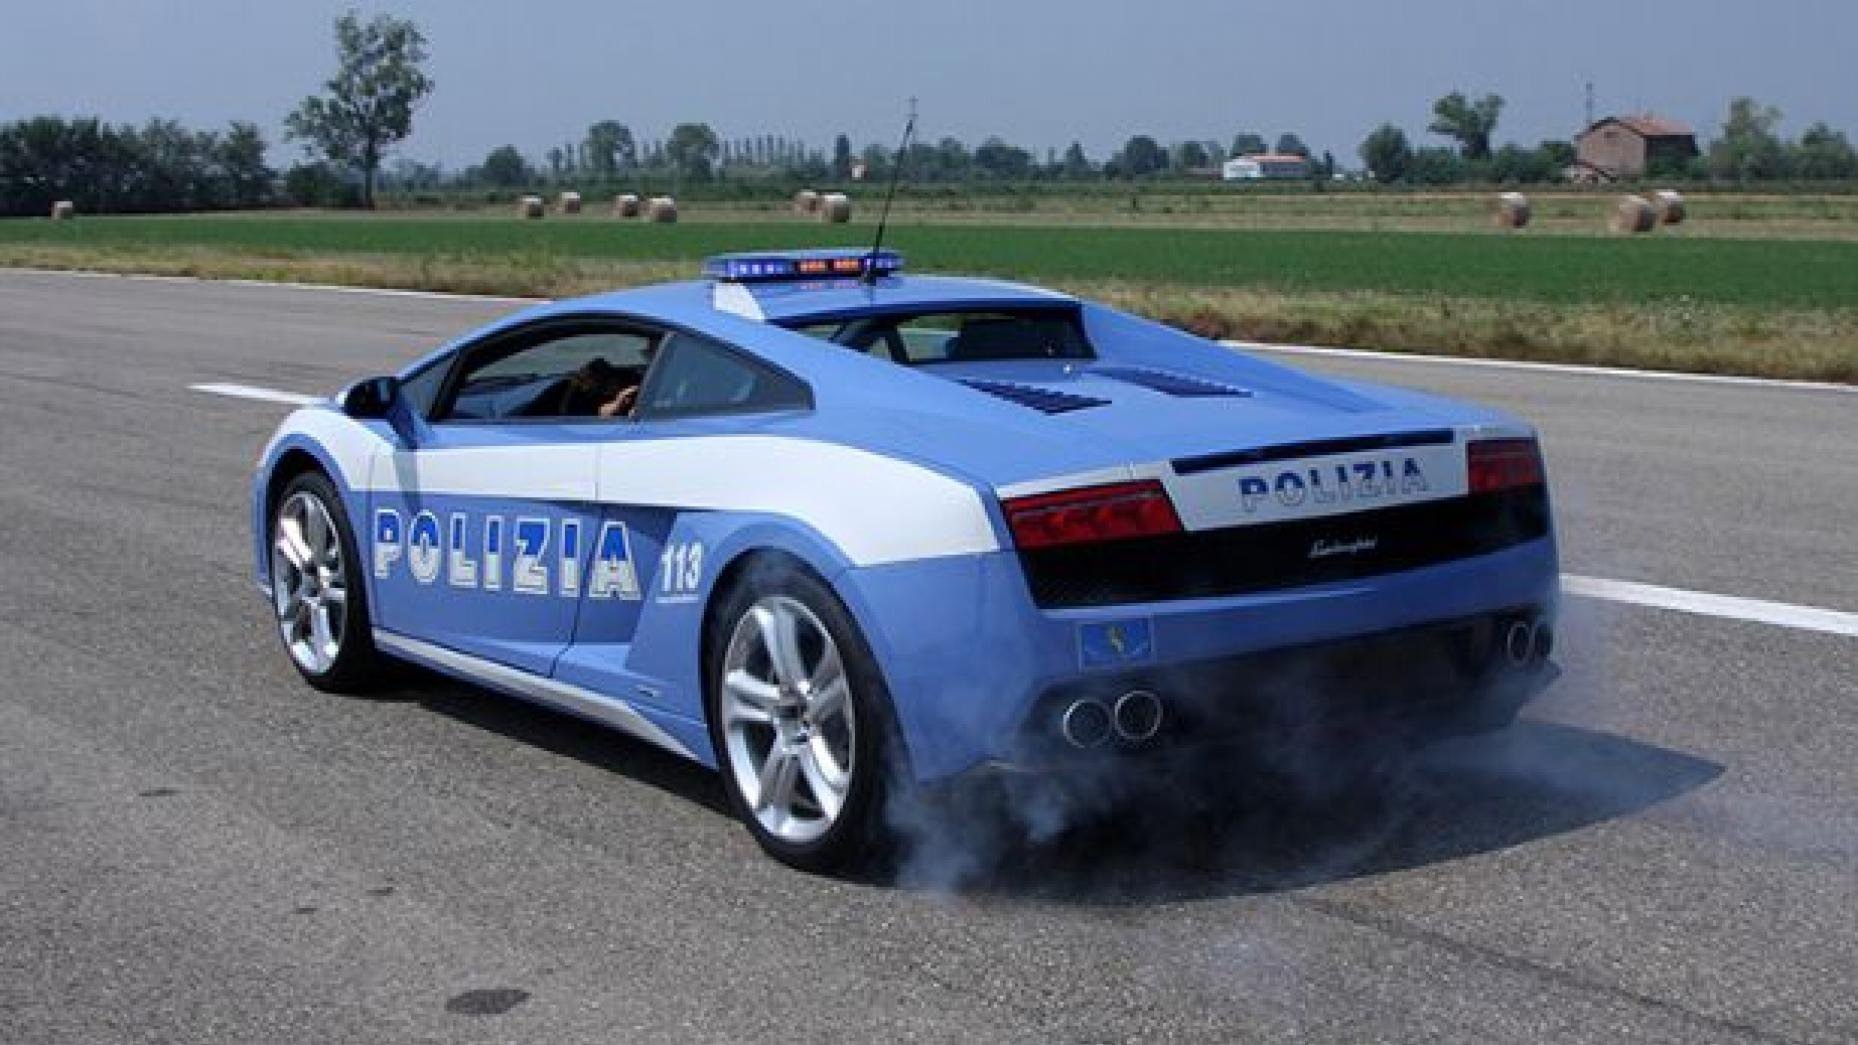 These 10 Superfast Mean Police Cars From Around The World Are Every